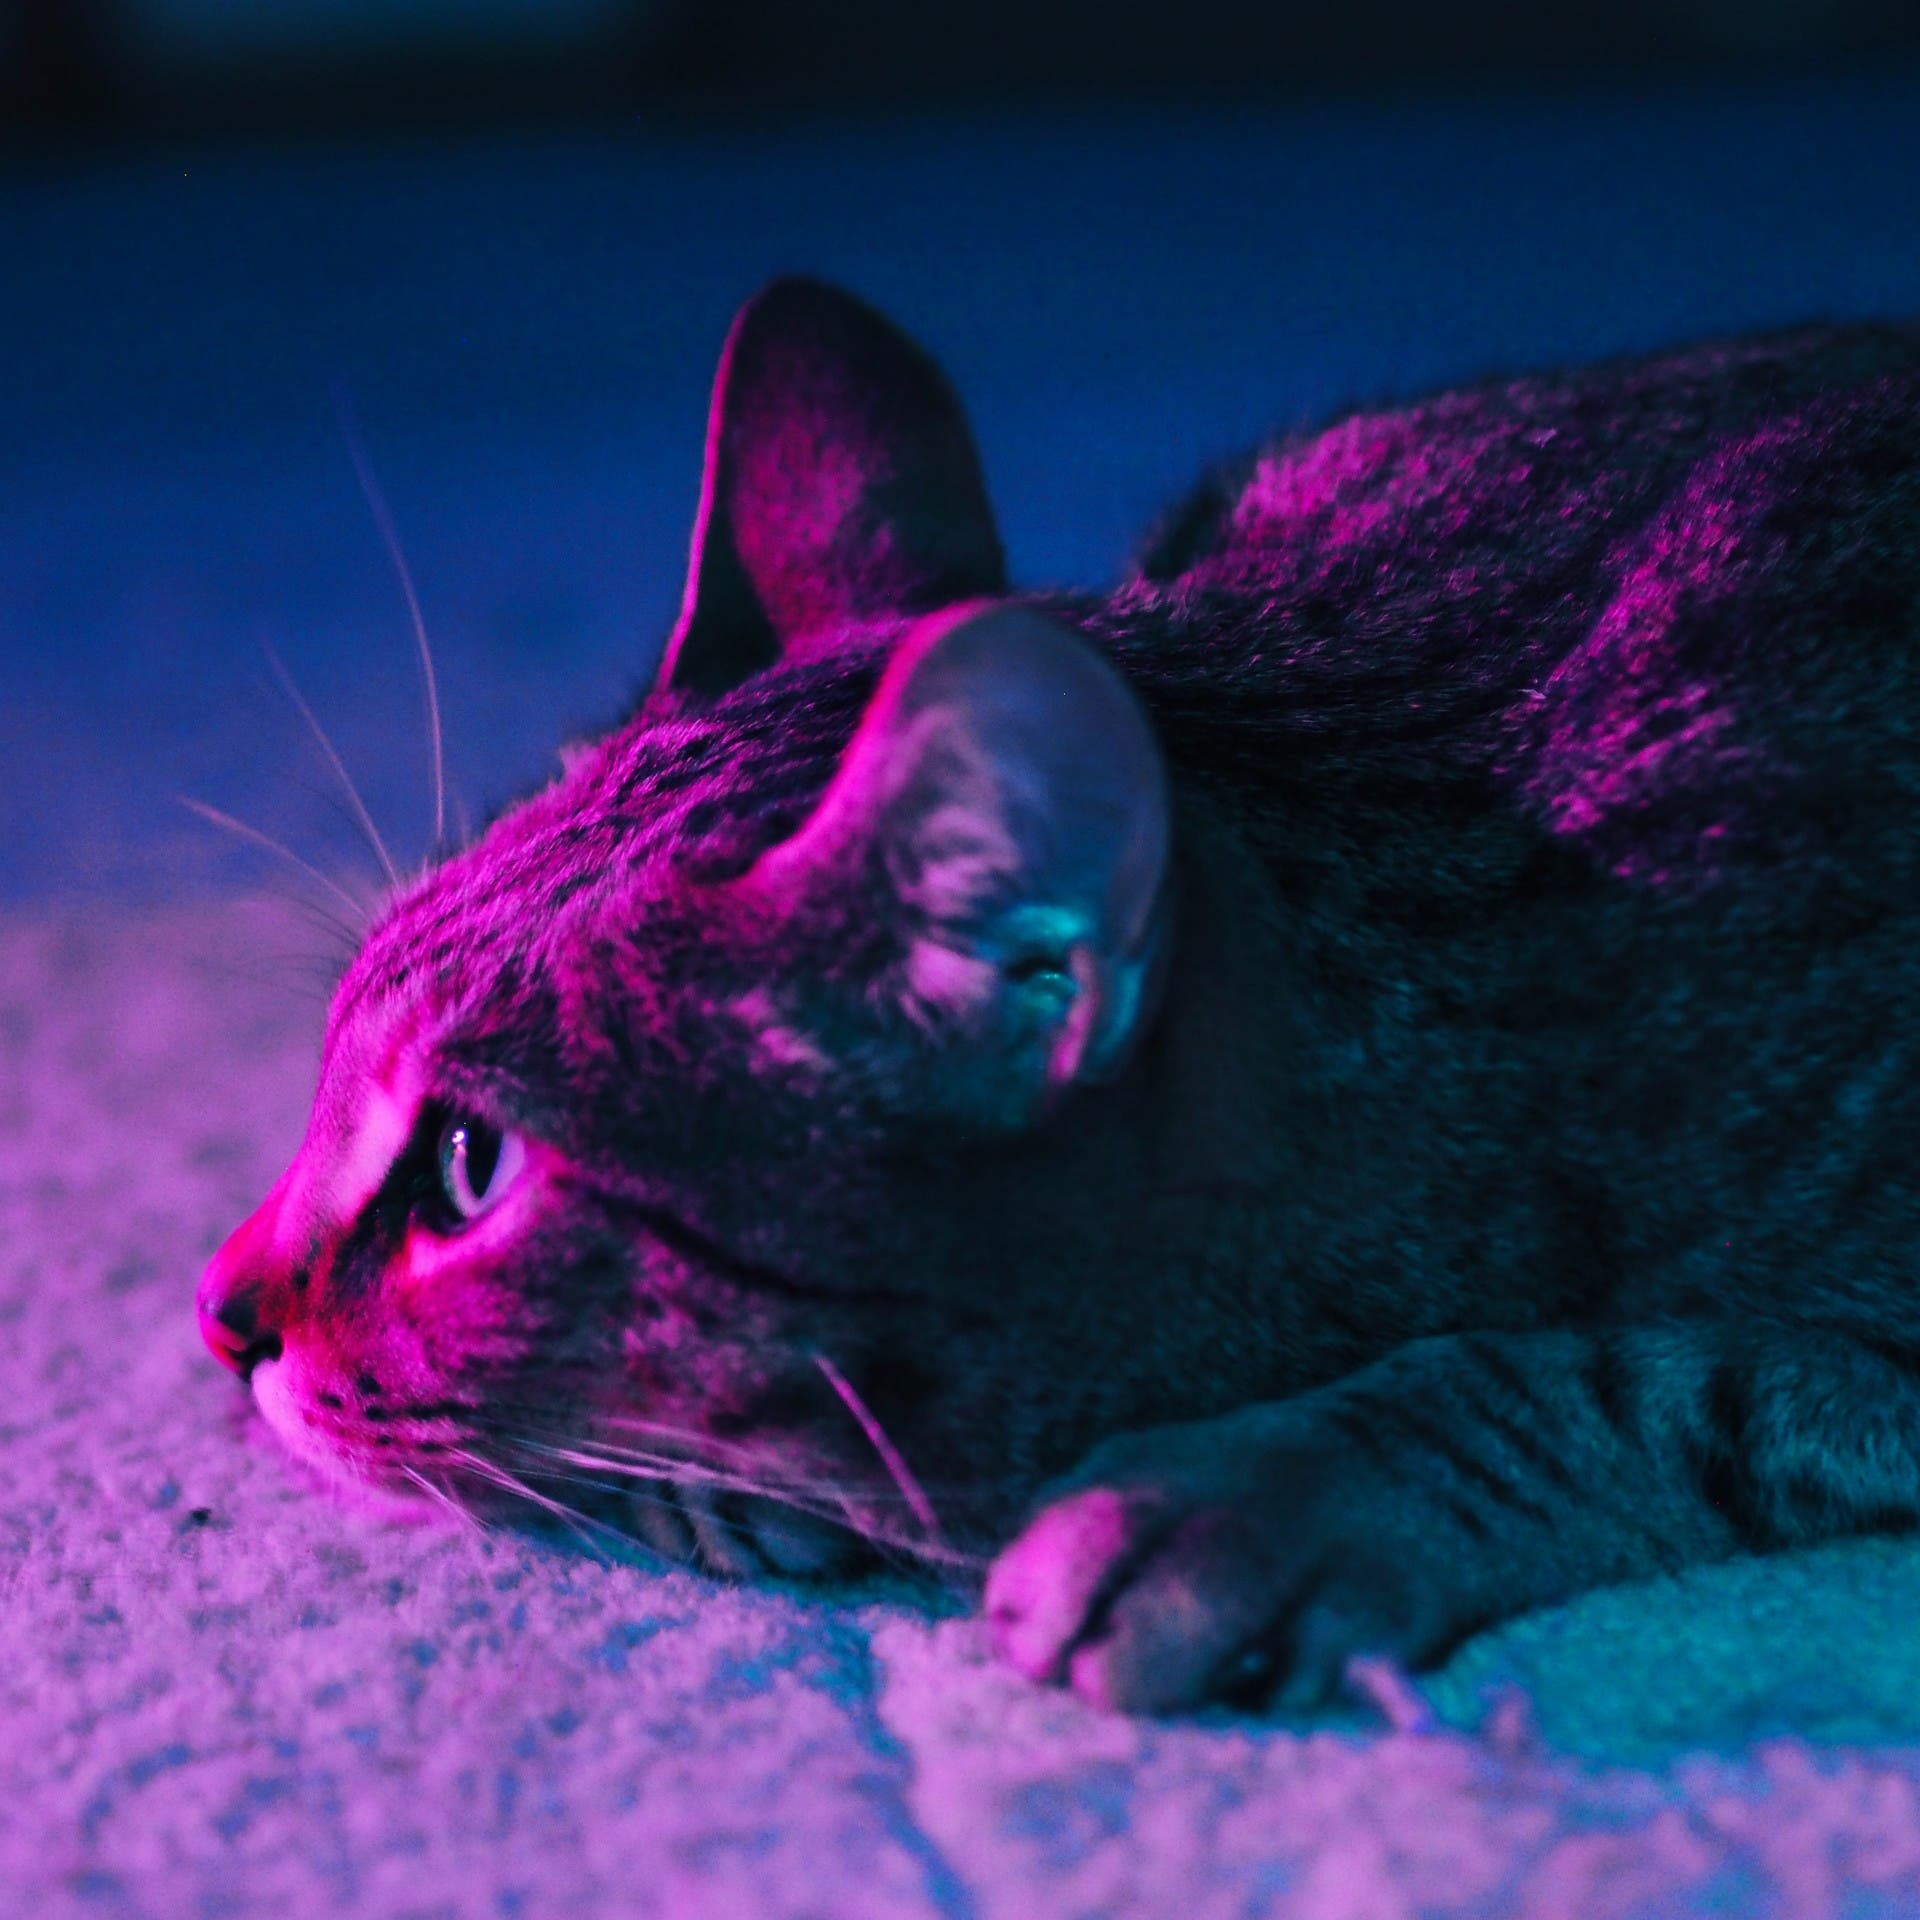 Is your cat depressed? Vet shares top 5 depression signs to look for and what to do